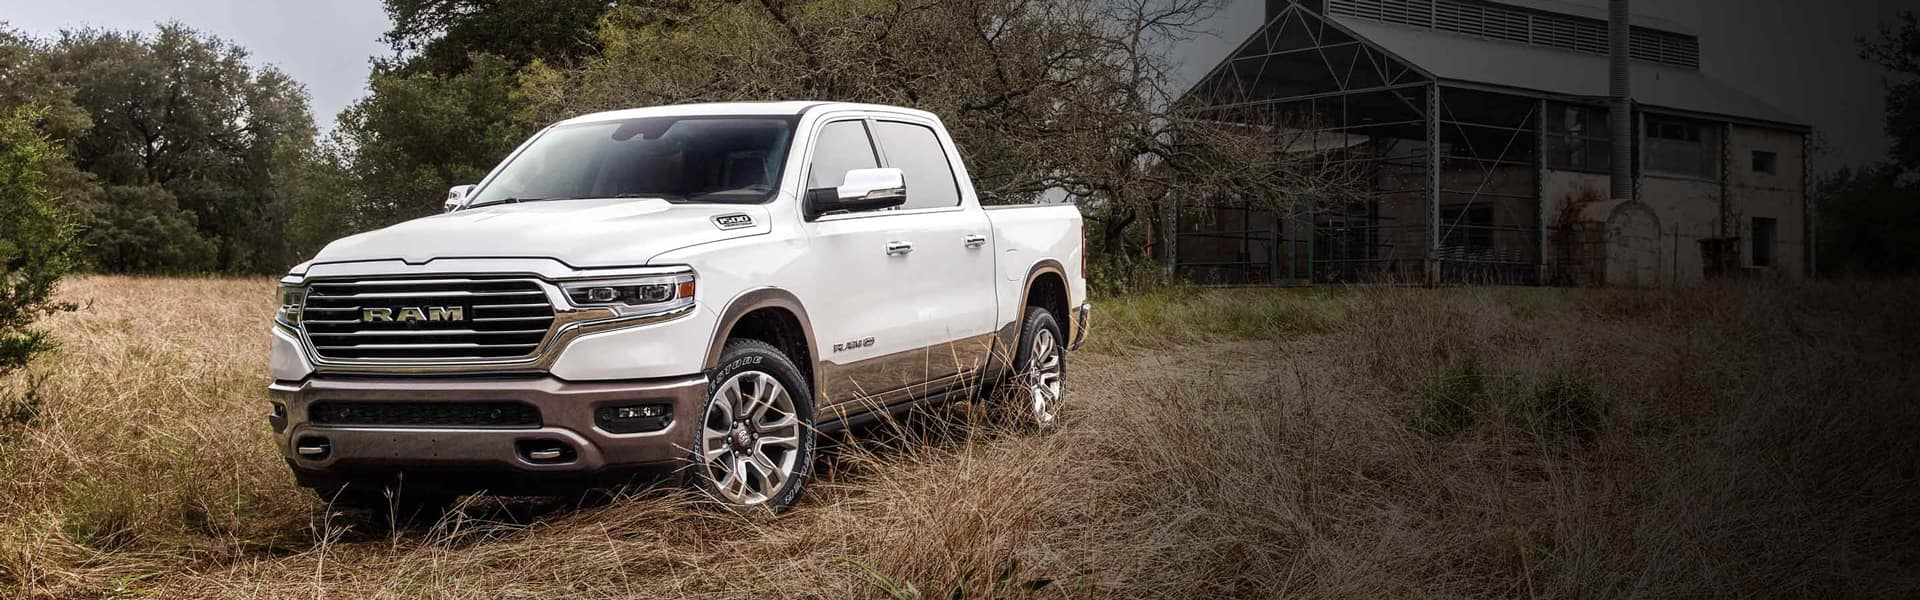 RAM 1500 For Sale in New Orleans